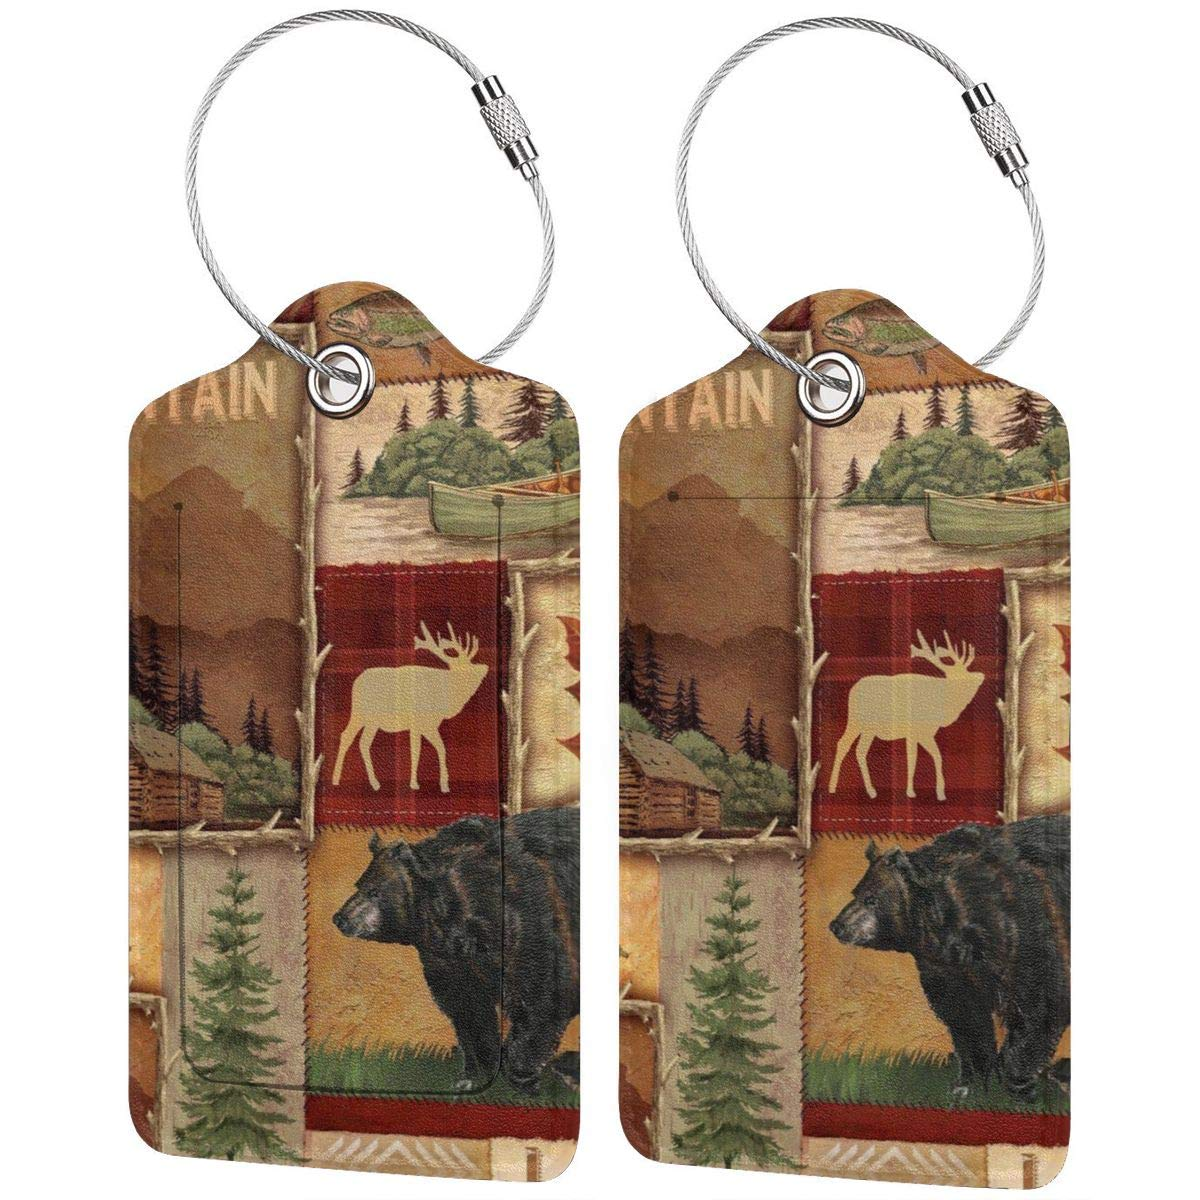 Leather Luggage Tag Rustic Lodge Bear Moose Mountain Lake Luggage Tags For Suitcase Travel Lover Gifts For Men Women 2 PCS